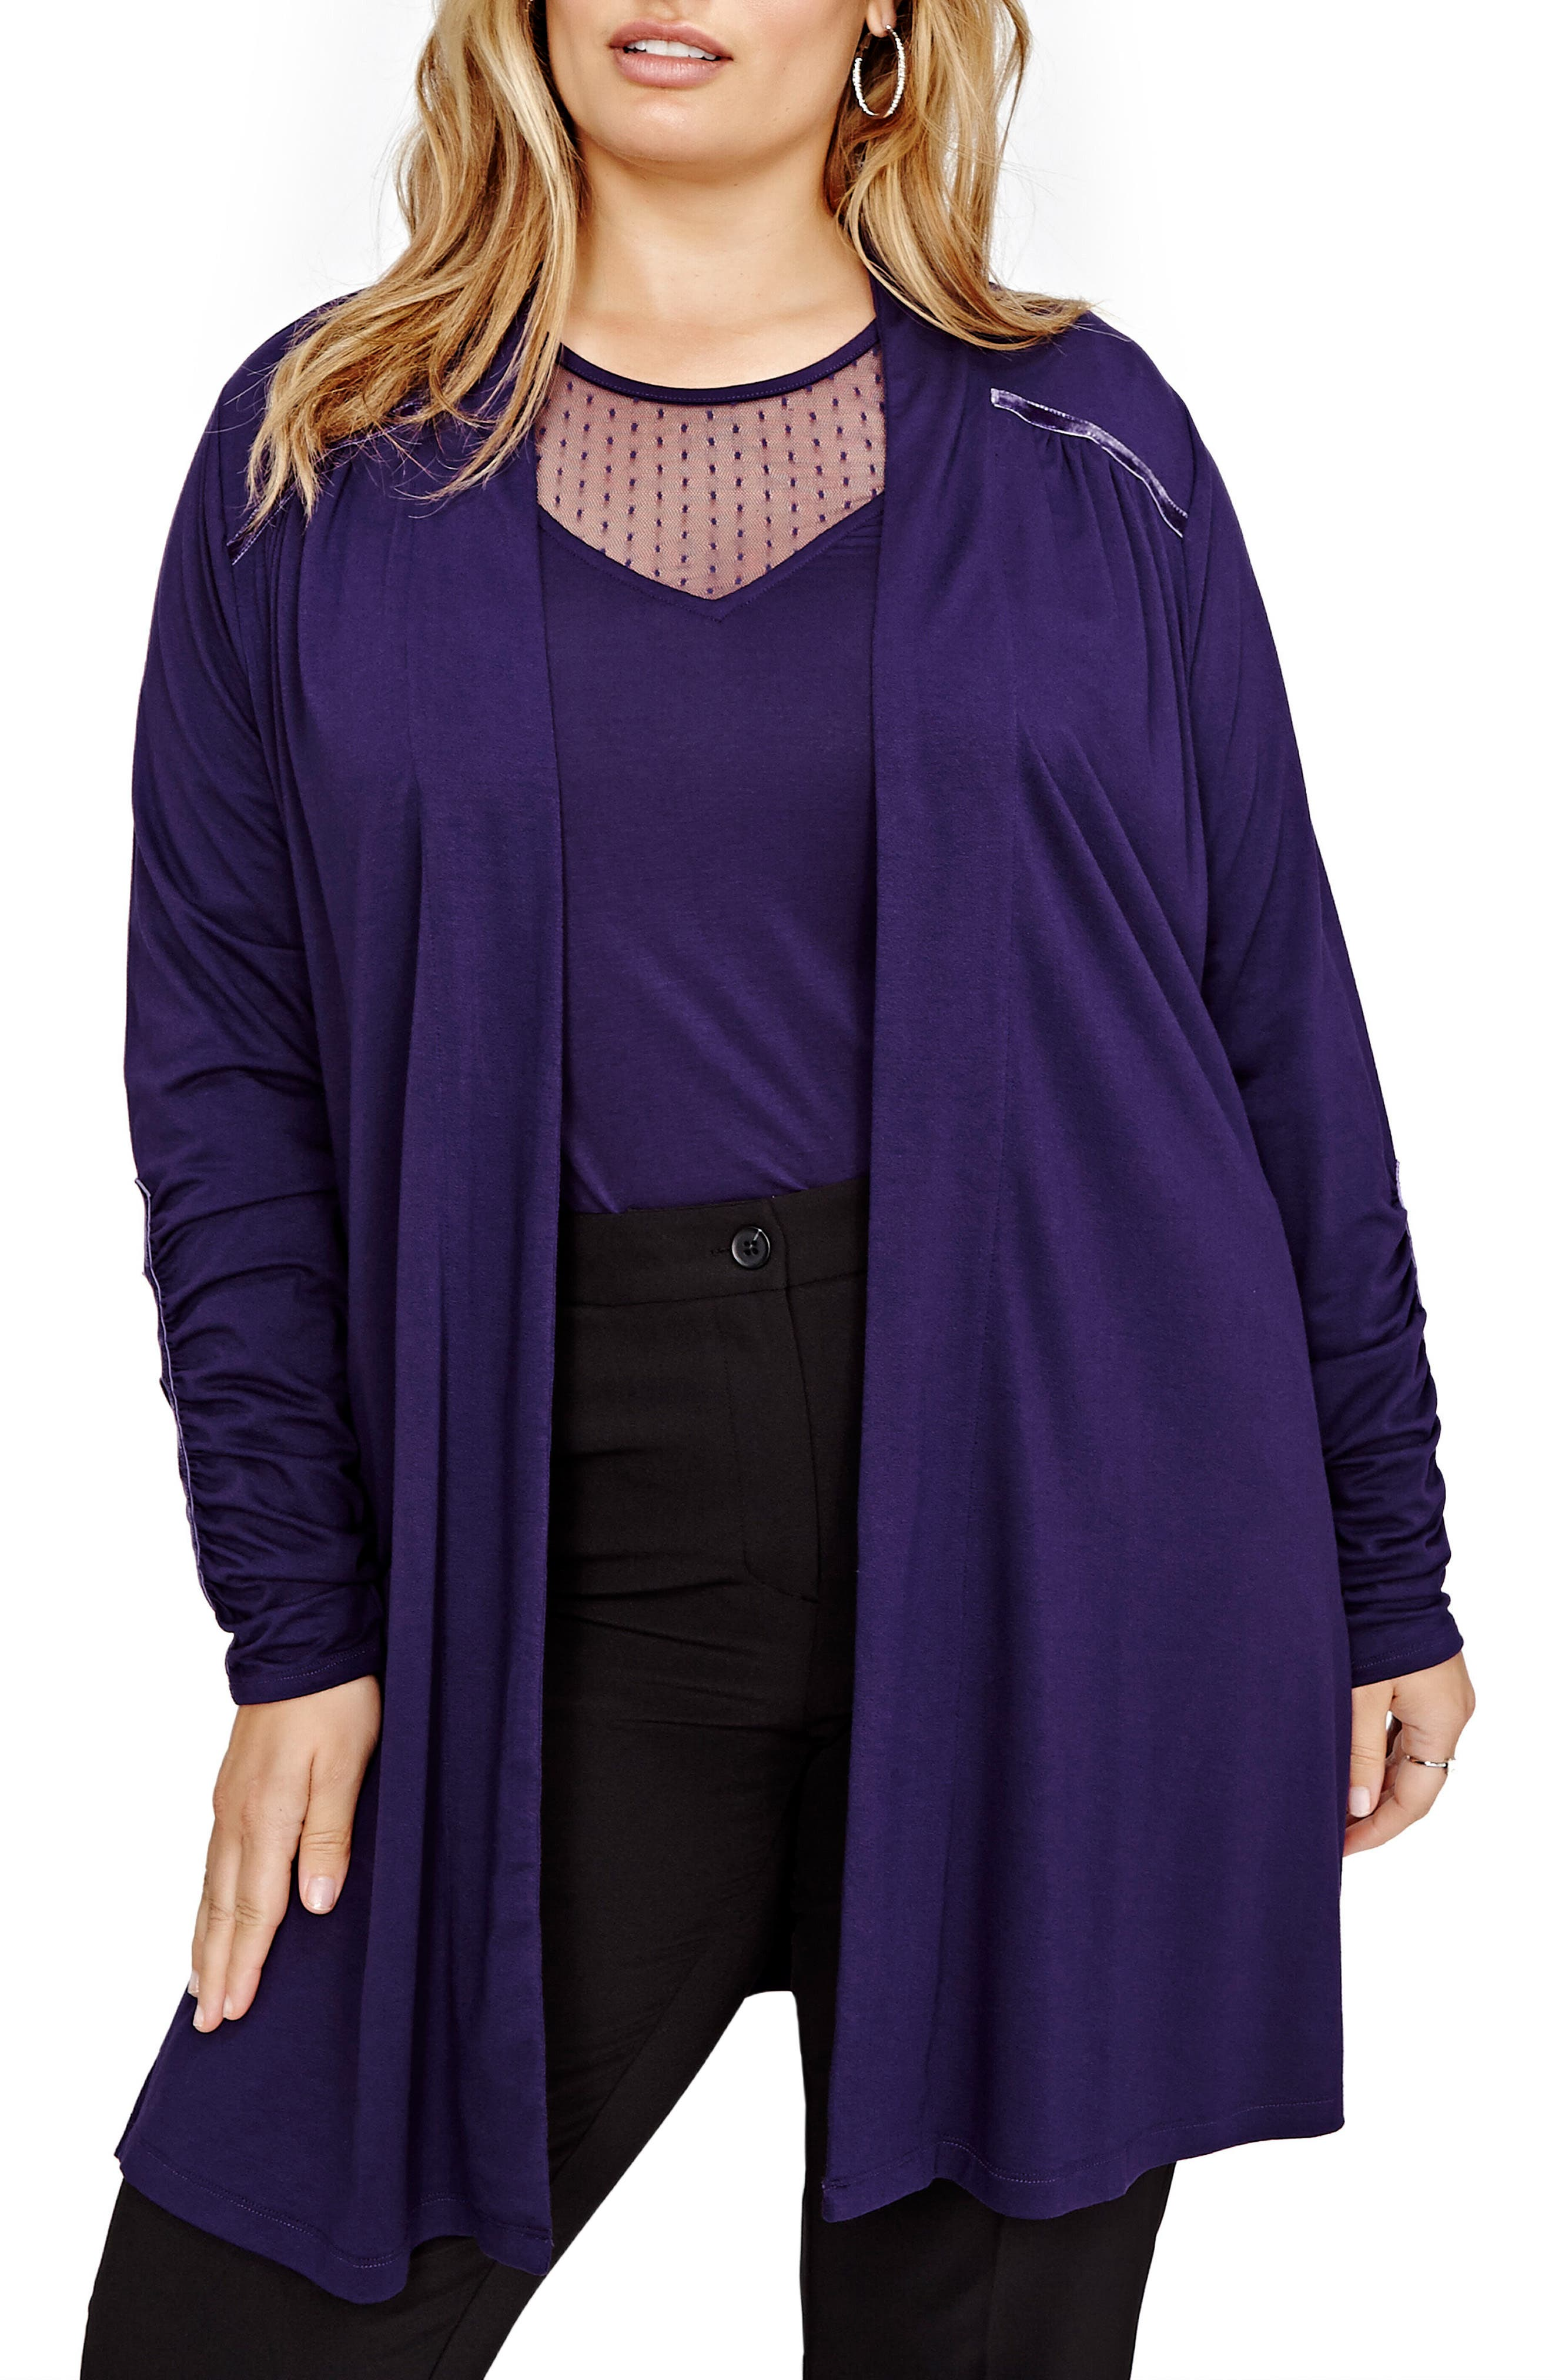 Alternate Image 1 Selected - MICHEL STUDIO Ruched Sleeve Cardigan (Plus Size)